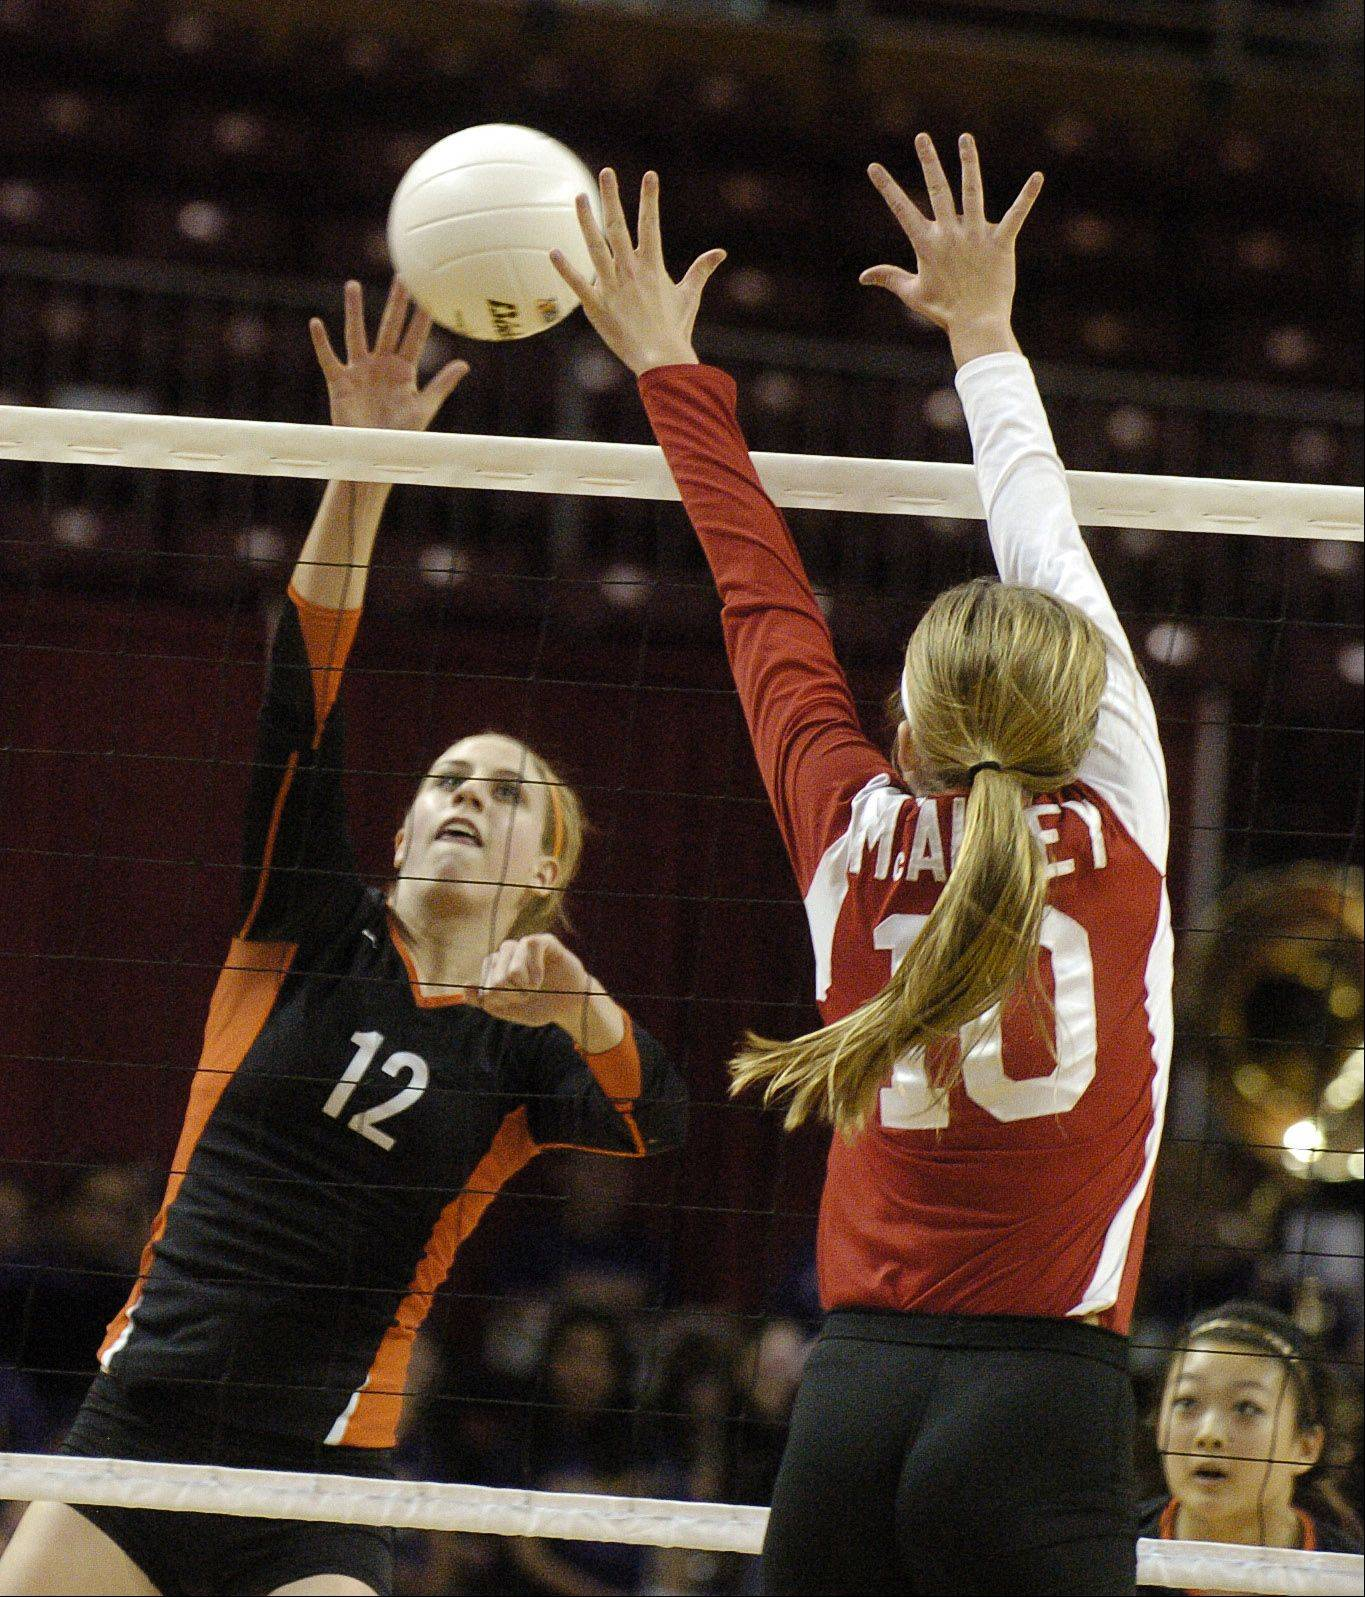 Paul Michna/pmichna@dailyherald.com Jordan Bauer of Libertyville,left hits the ball while Ryann DeJarld of Mother McAuley attempts to block it. This took place during the Libertyville vs. Mother McAuley Class 4A third-place volleyball game at Redbird Arena, on Illinois State campus Saturday.